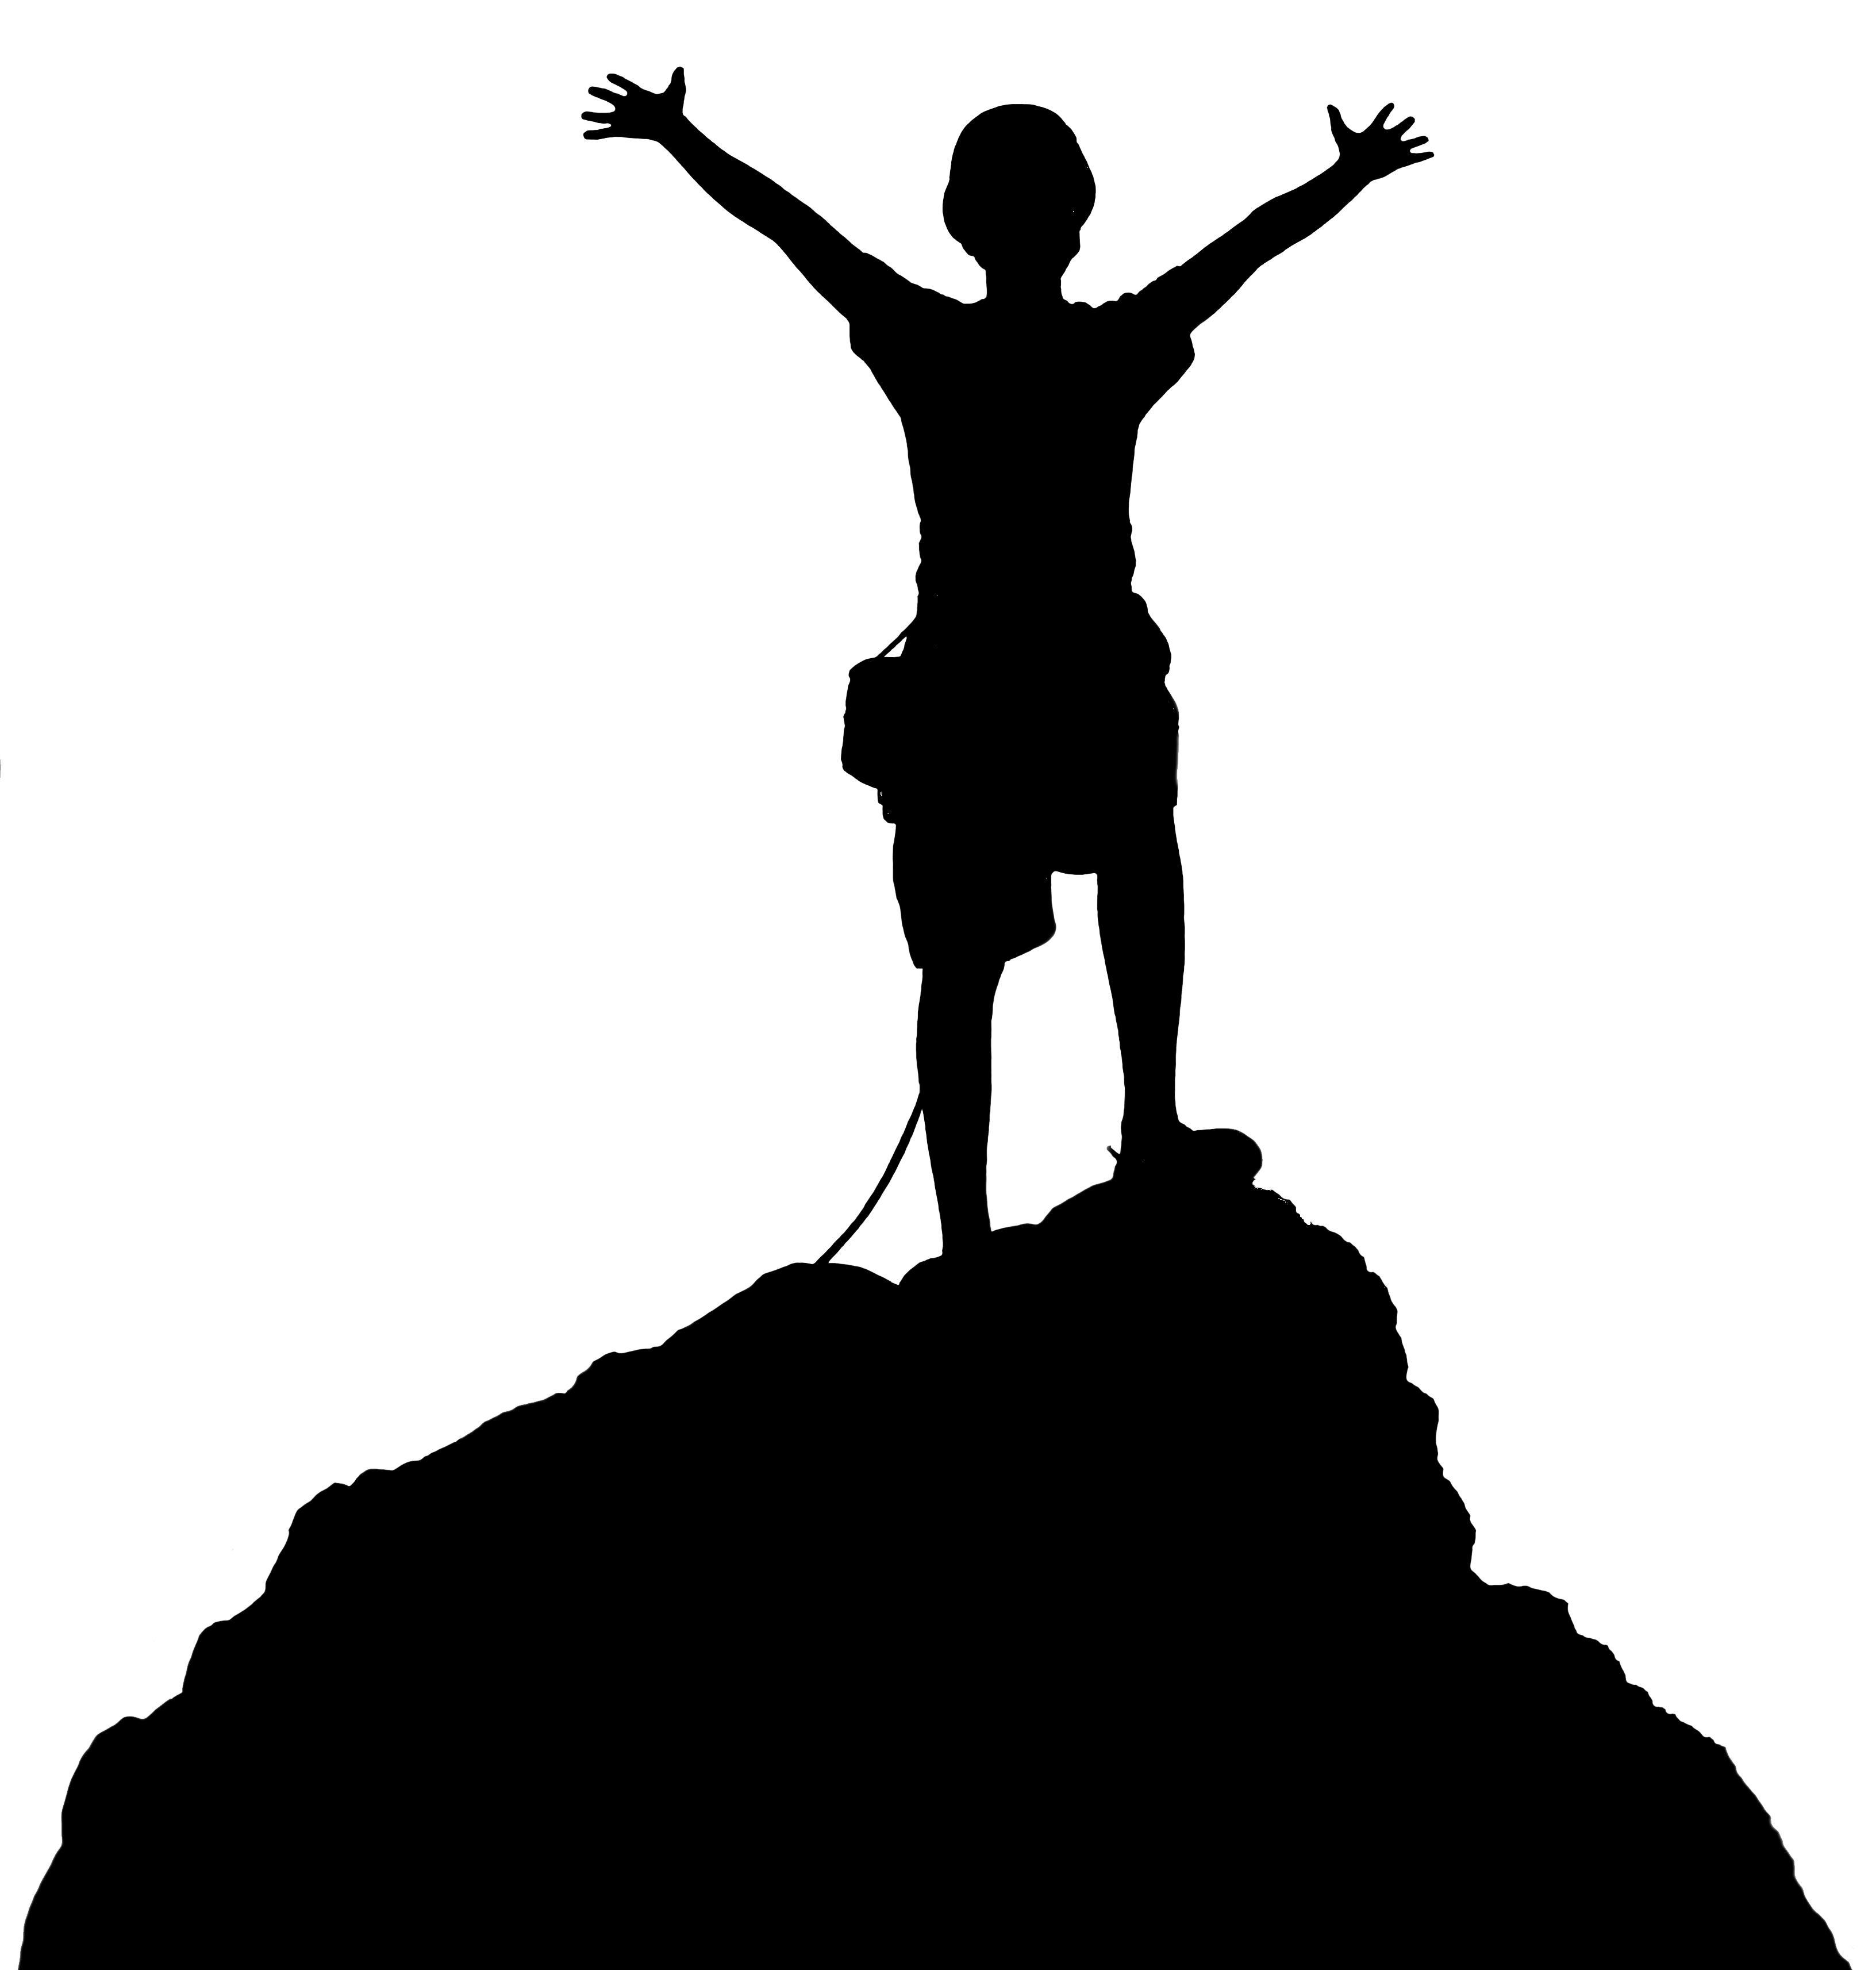 3264x3427 Hd Best Free Hiking Top Of Mountain Clipart Kid Image Cdr